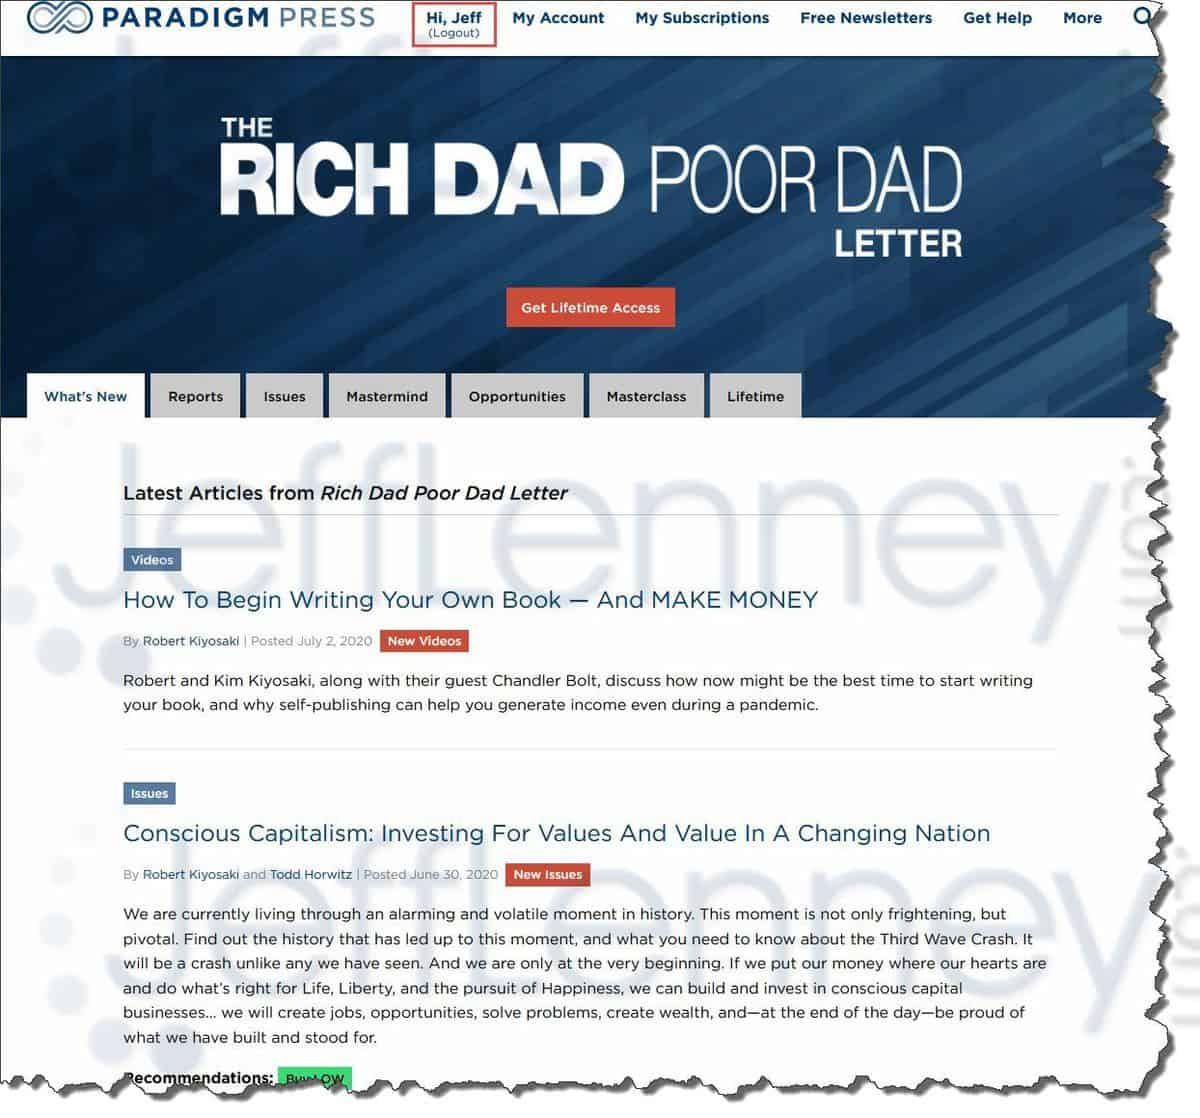 Rich Dad Poor Dad Letter Members Area